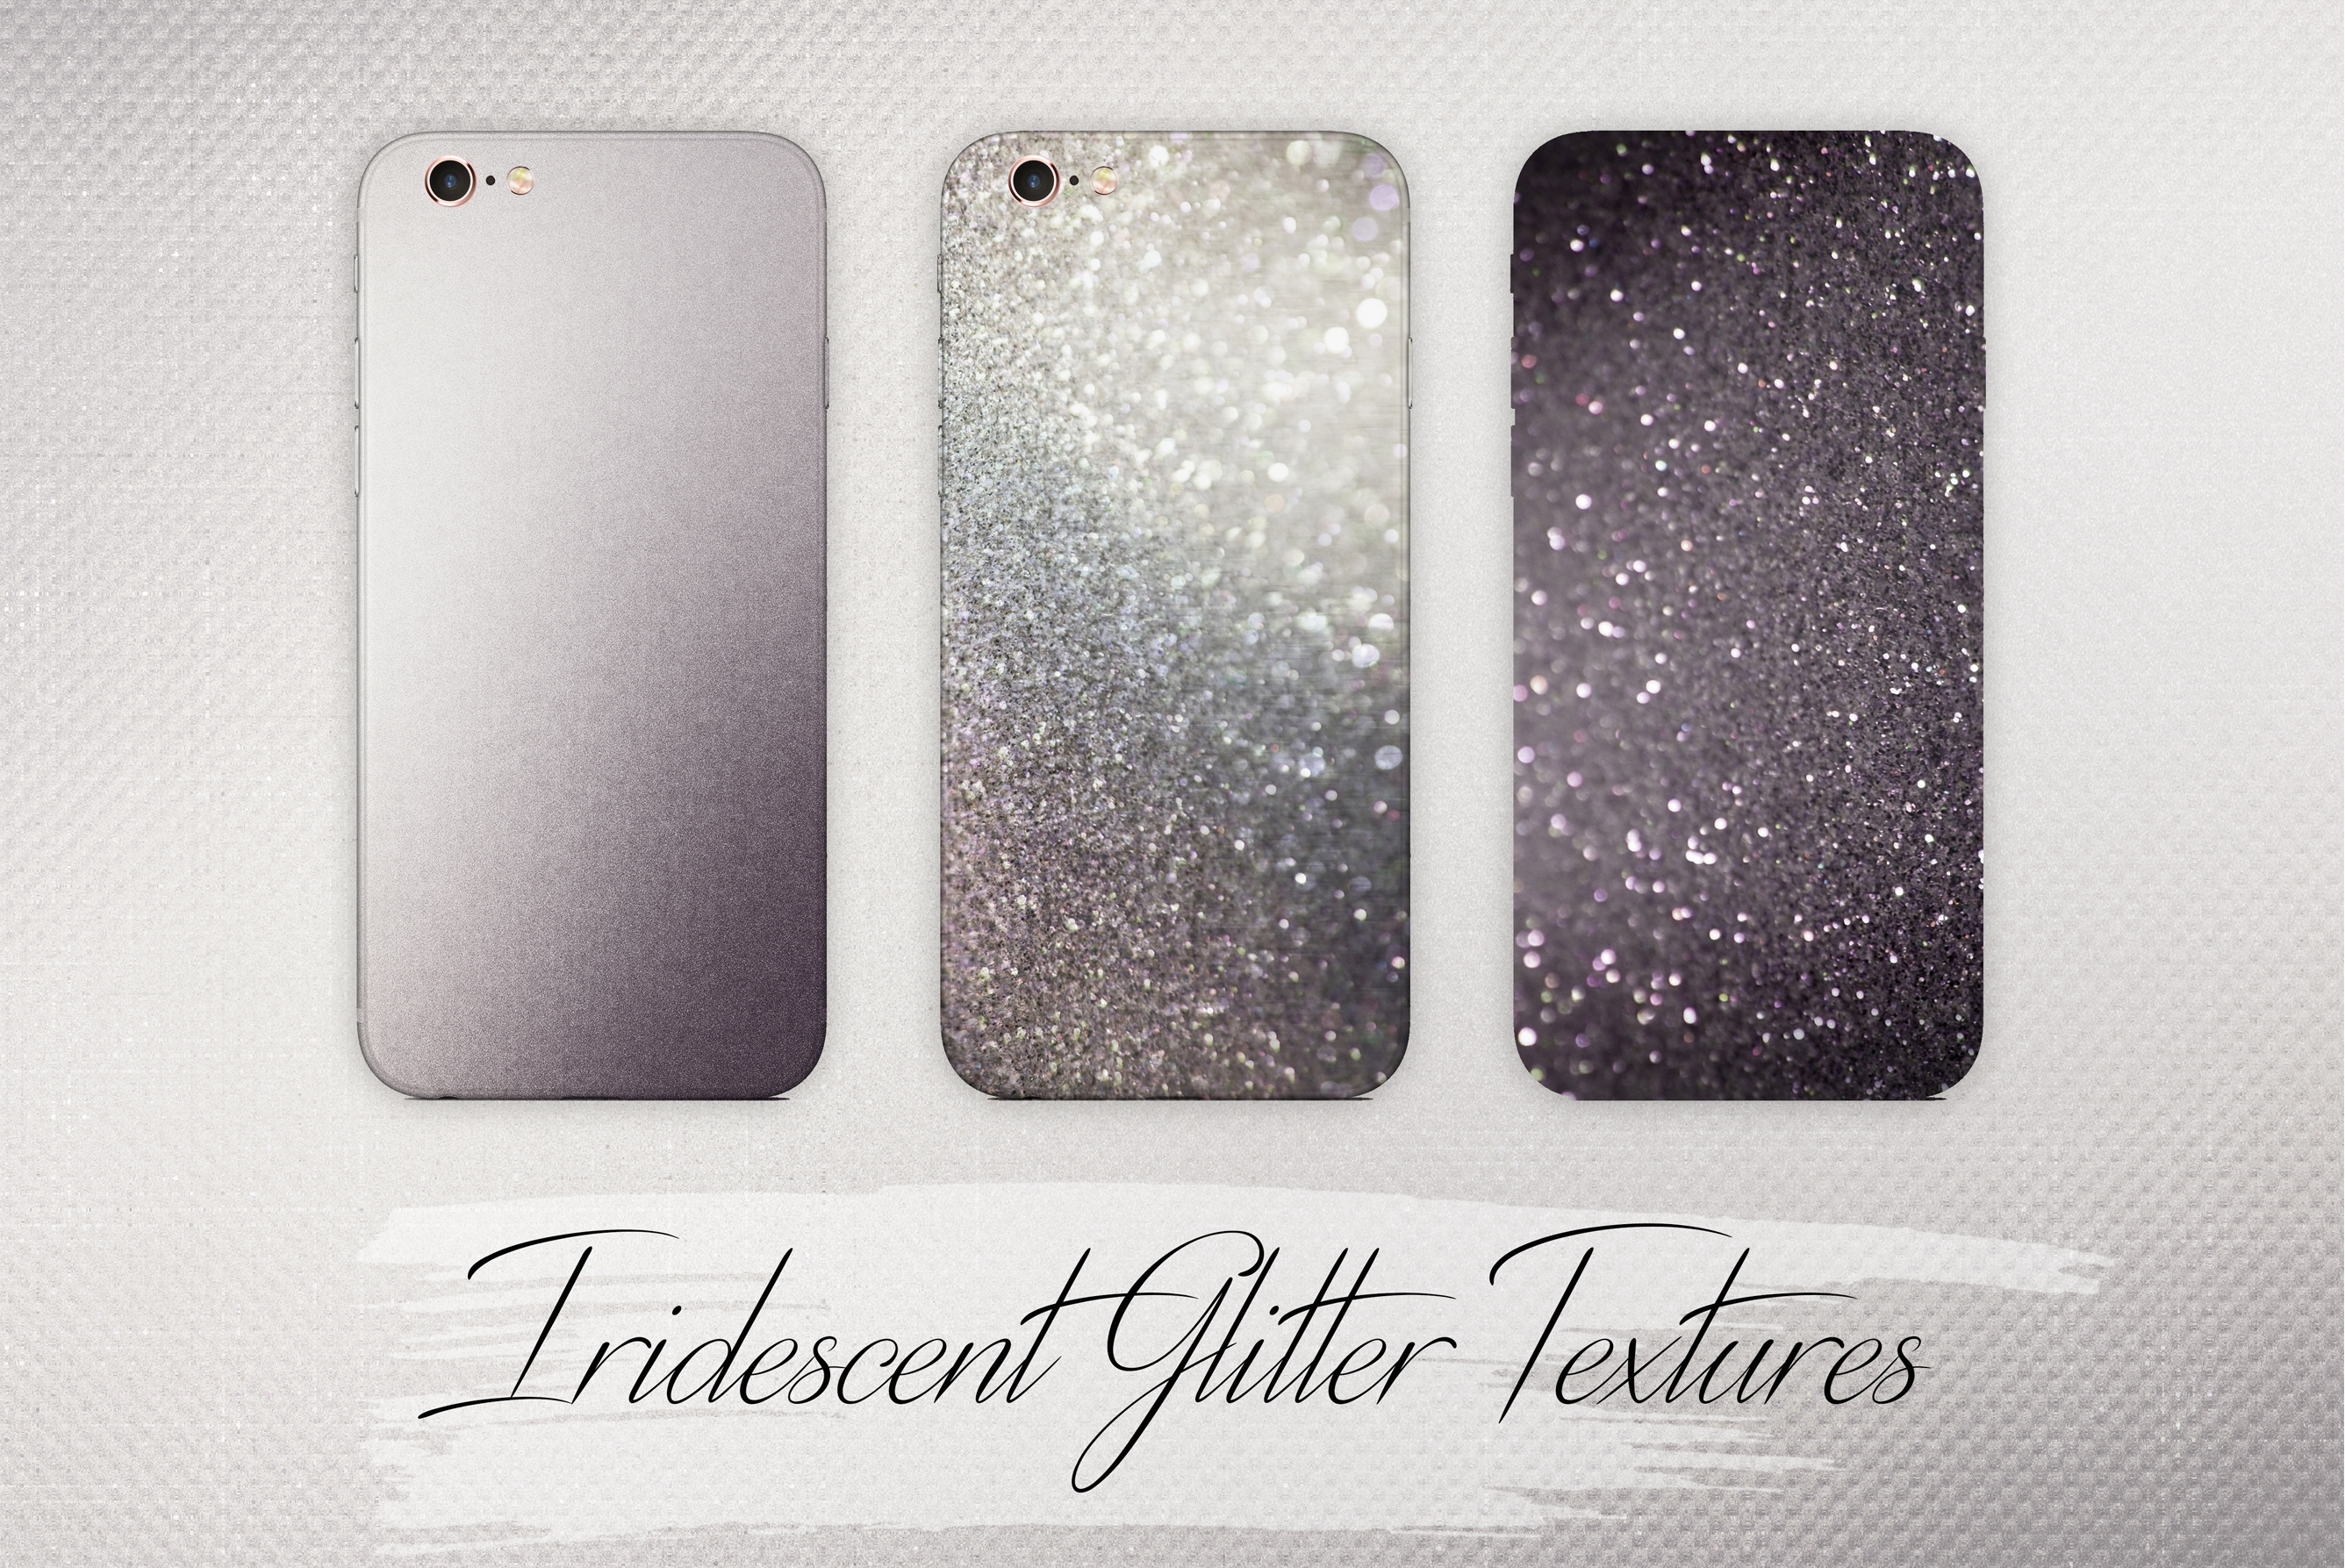 Iridescent and Glitter 180 Textures BUNDLE example image 21